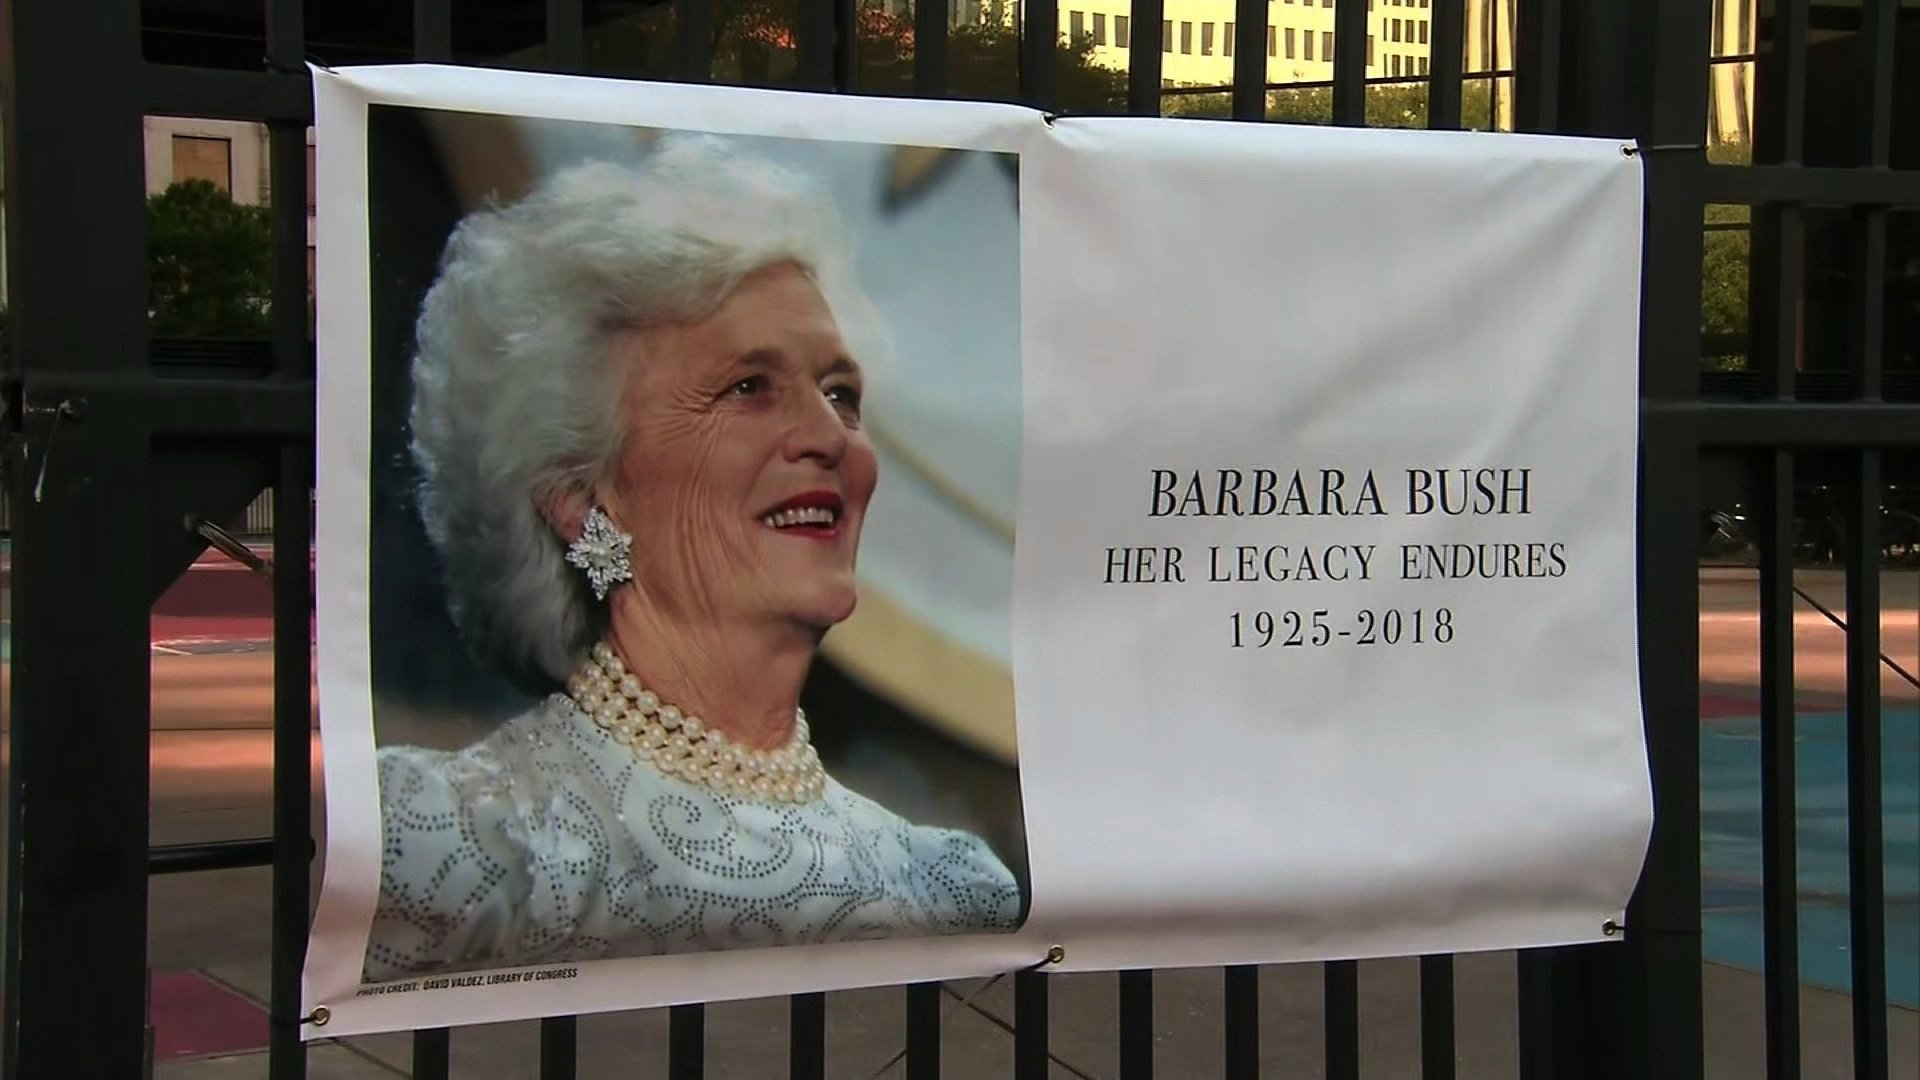 Funeral service honoring the life and legacy of Barbara Bush